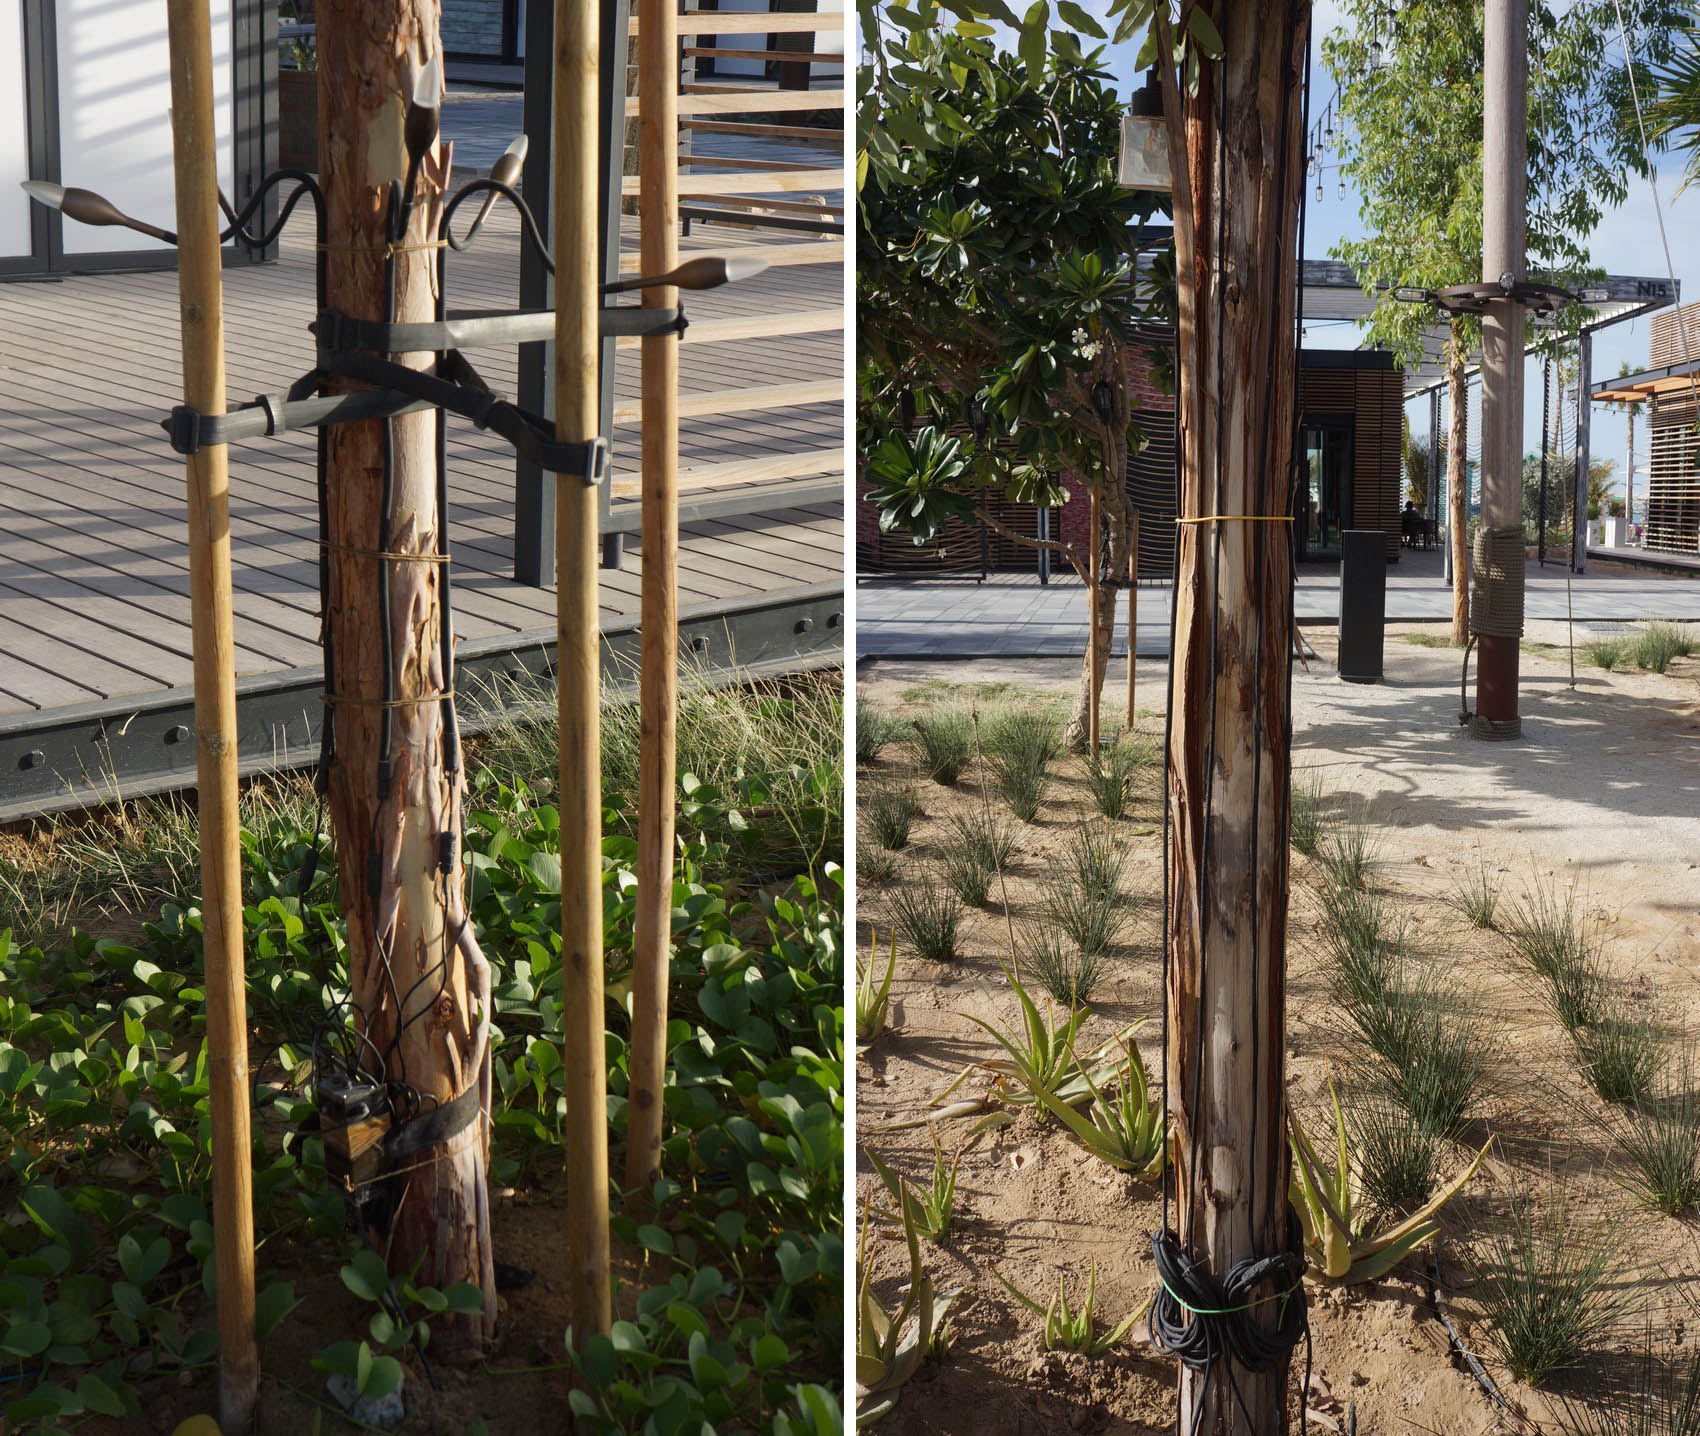 Incorrect attachment of electric cables to a tree